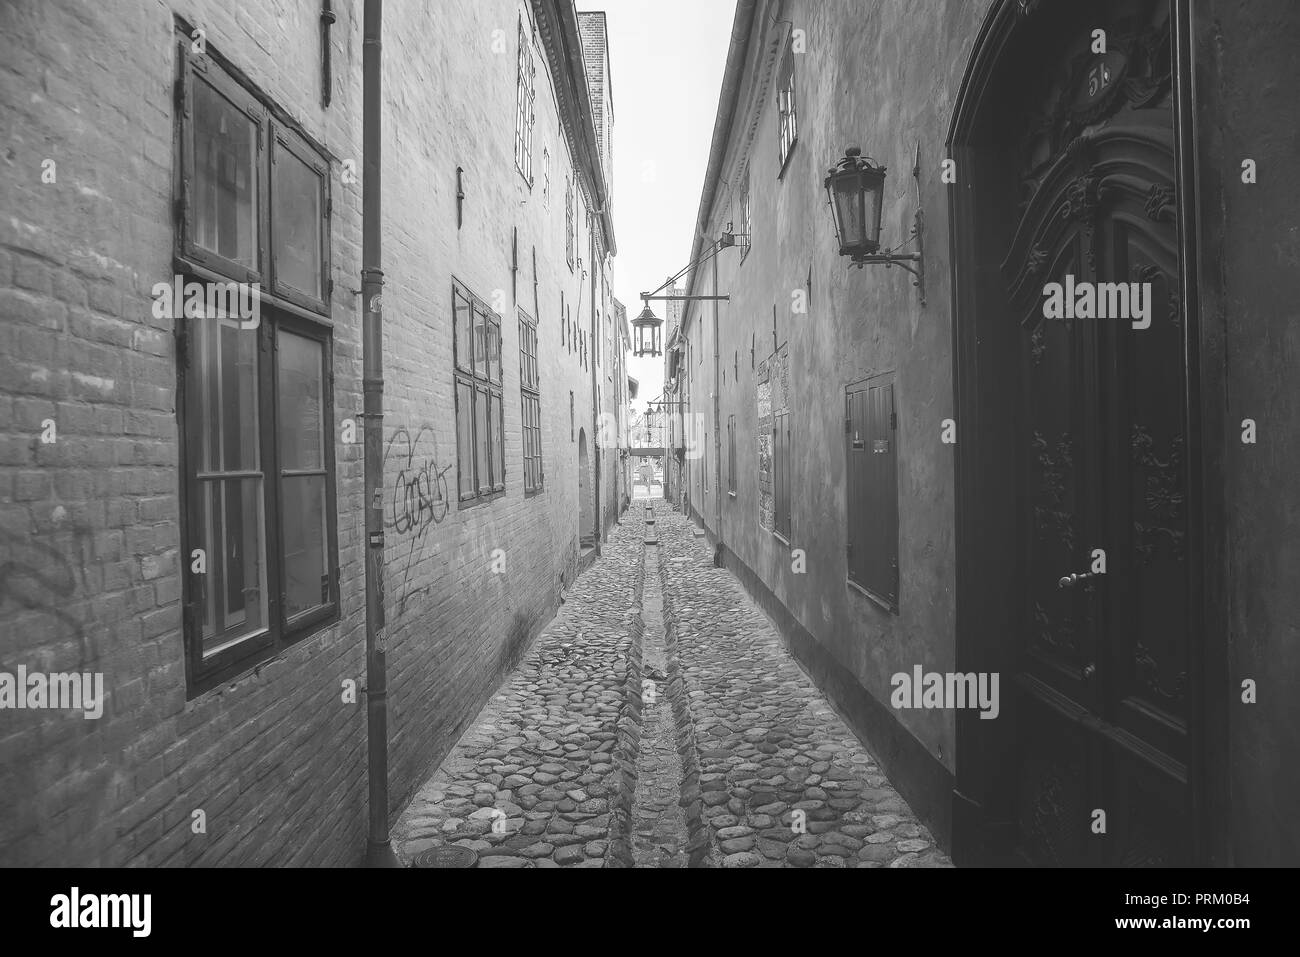 narrow old street  - Stock Image